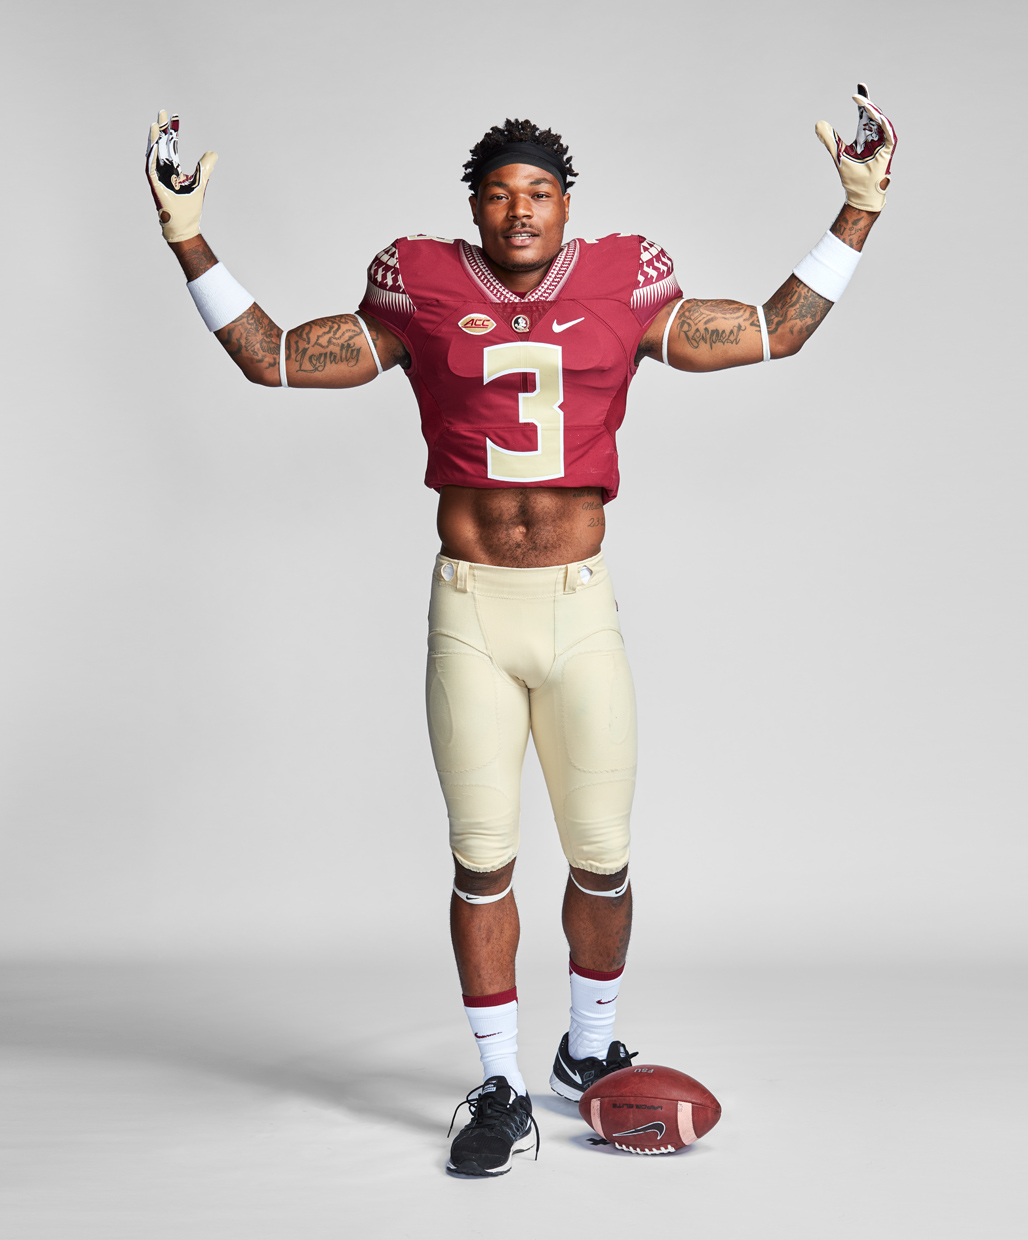 ESPN_FSU_3JAMES_4COOK_0156